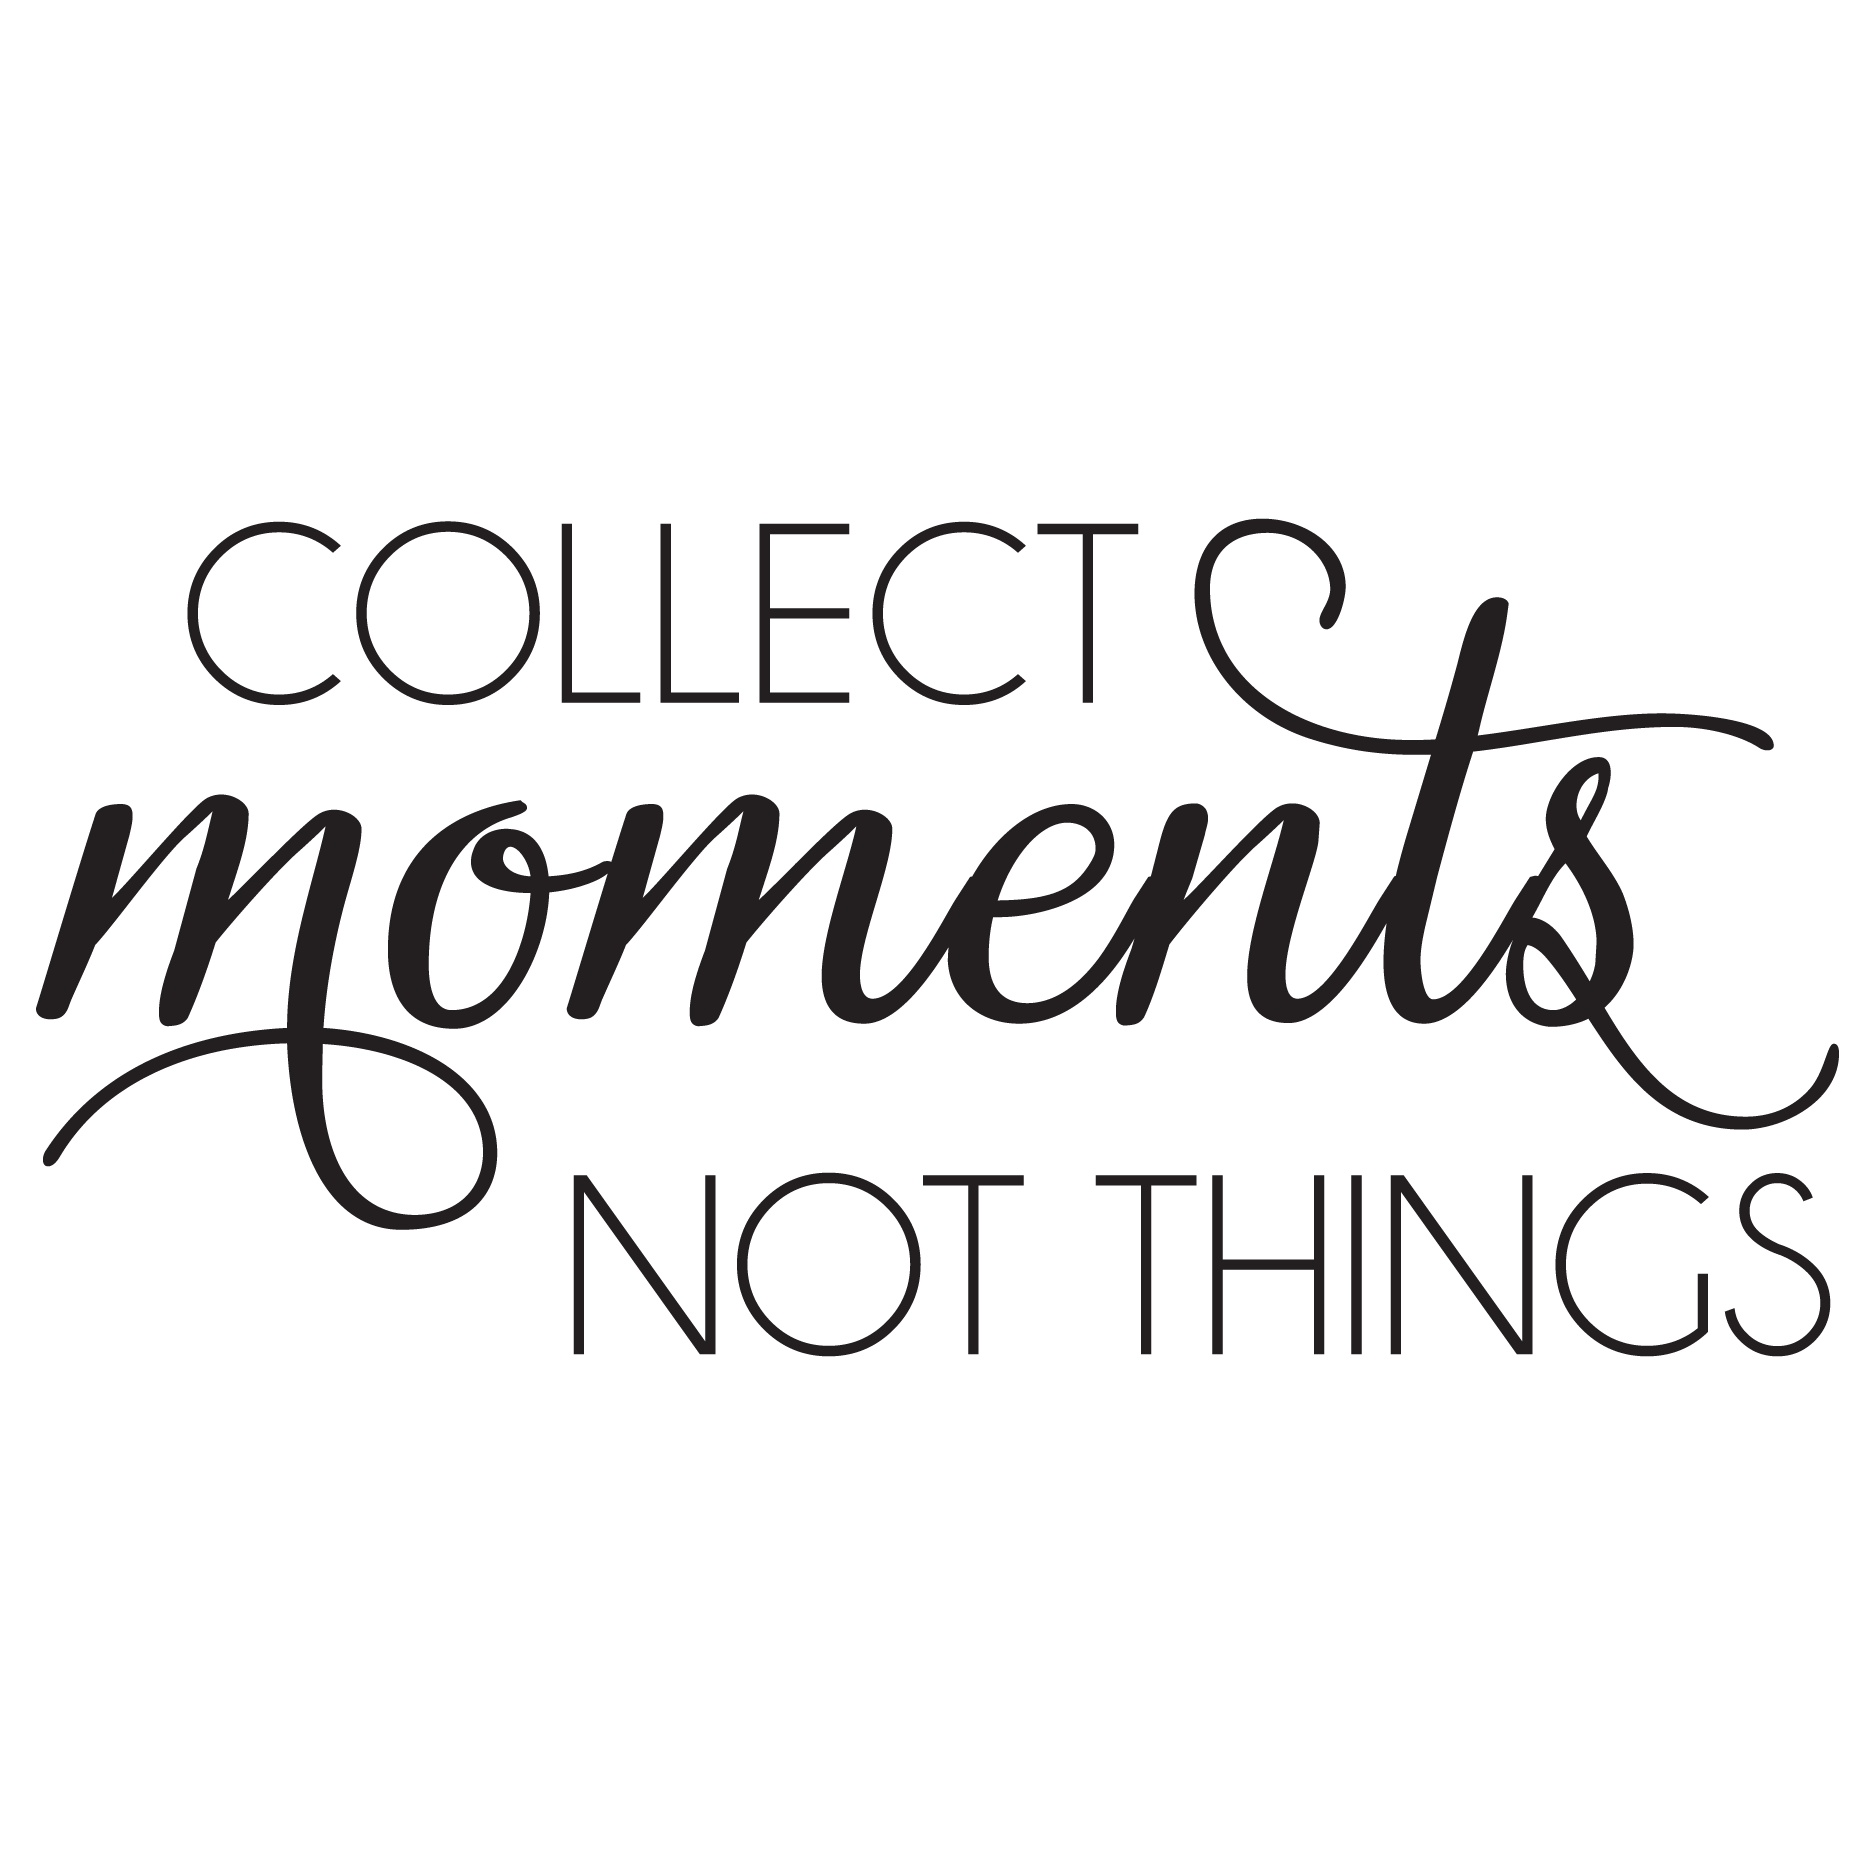 Memories clipart calligraphy. Collect moments not things